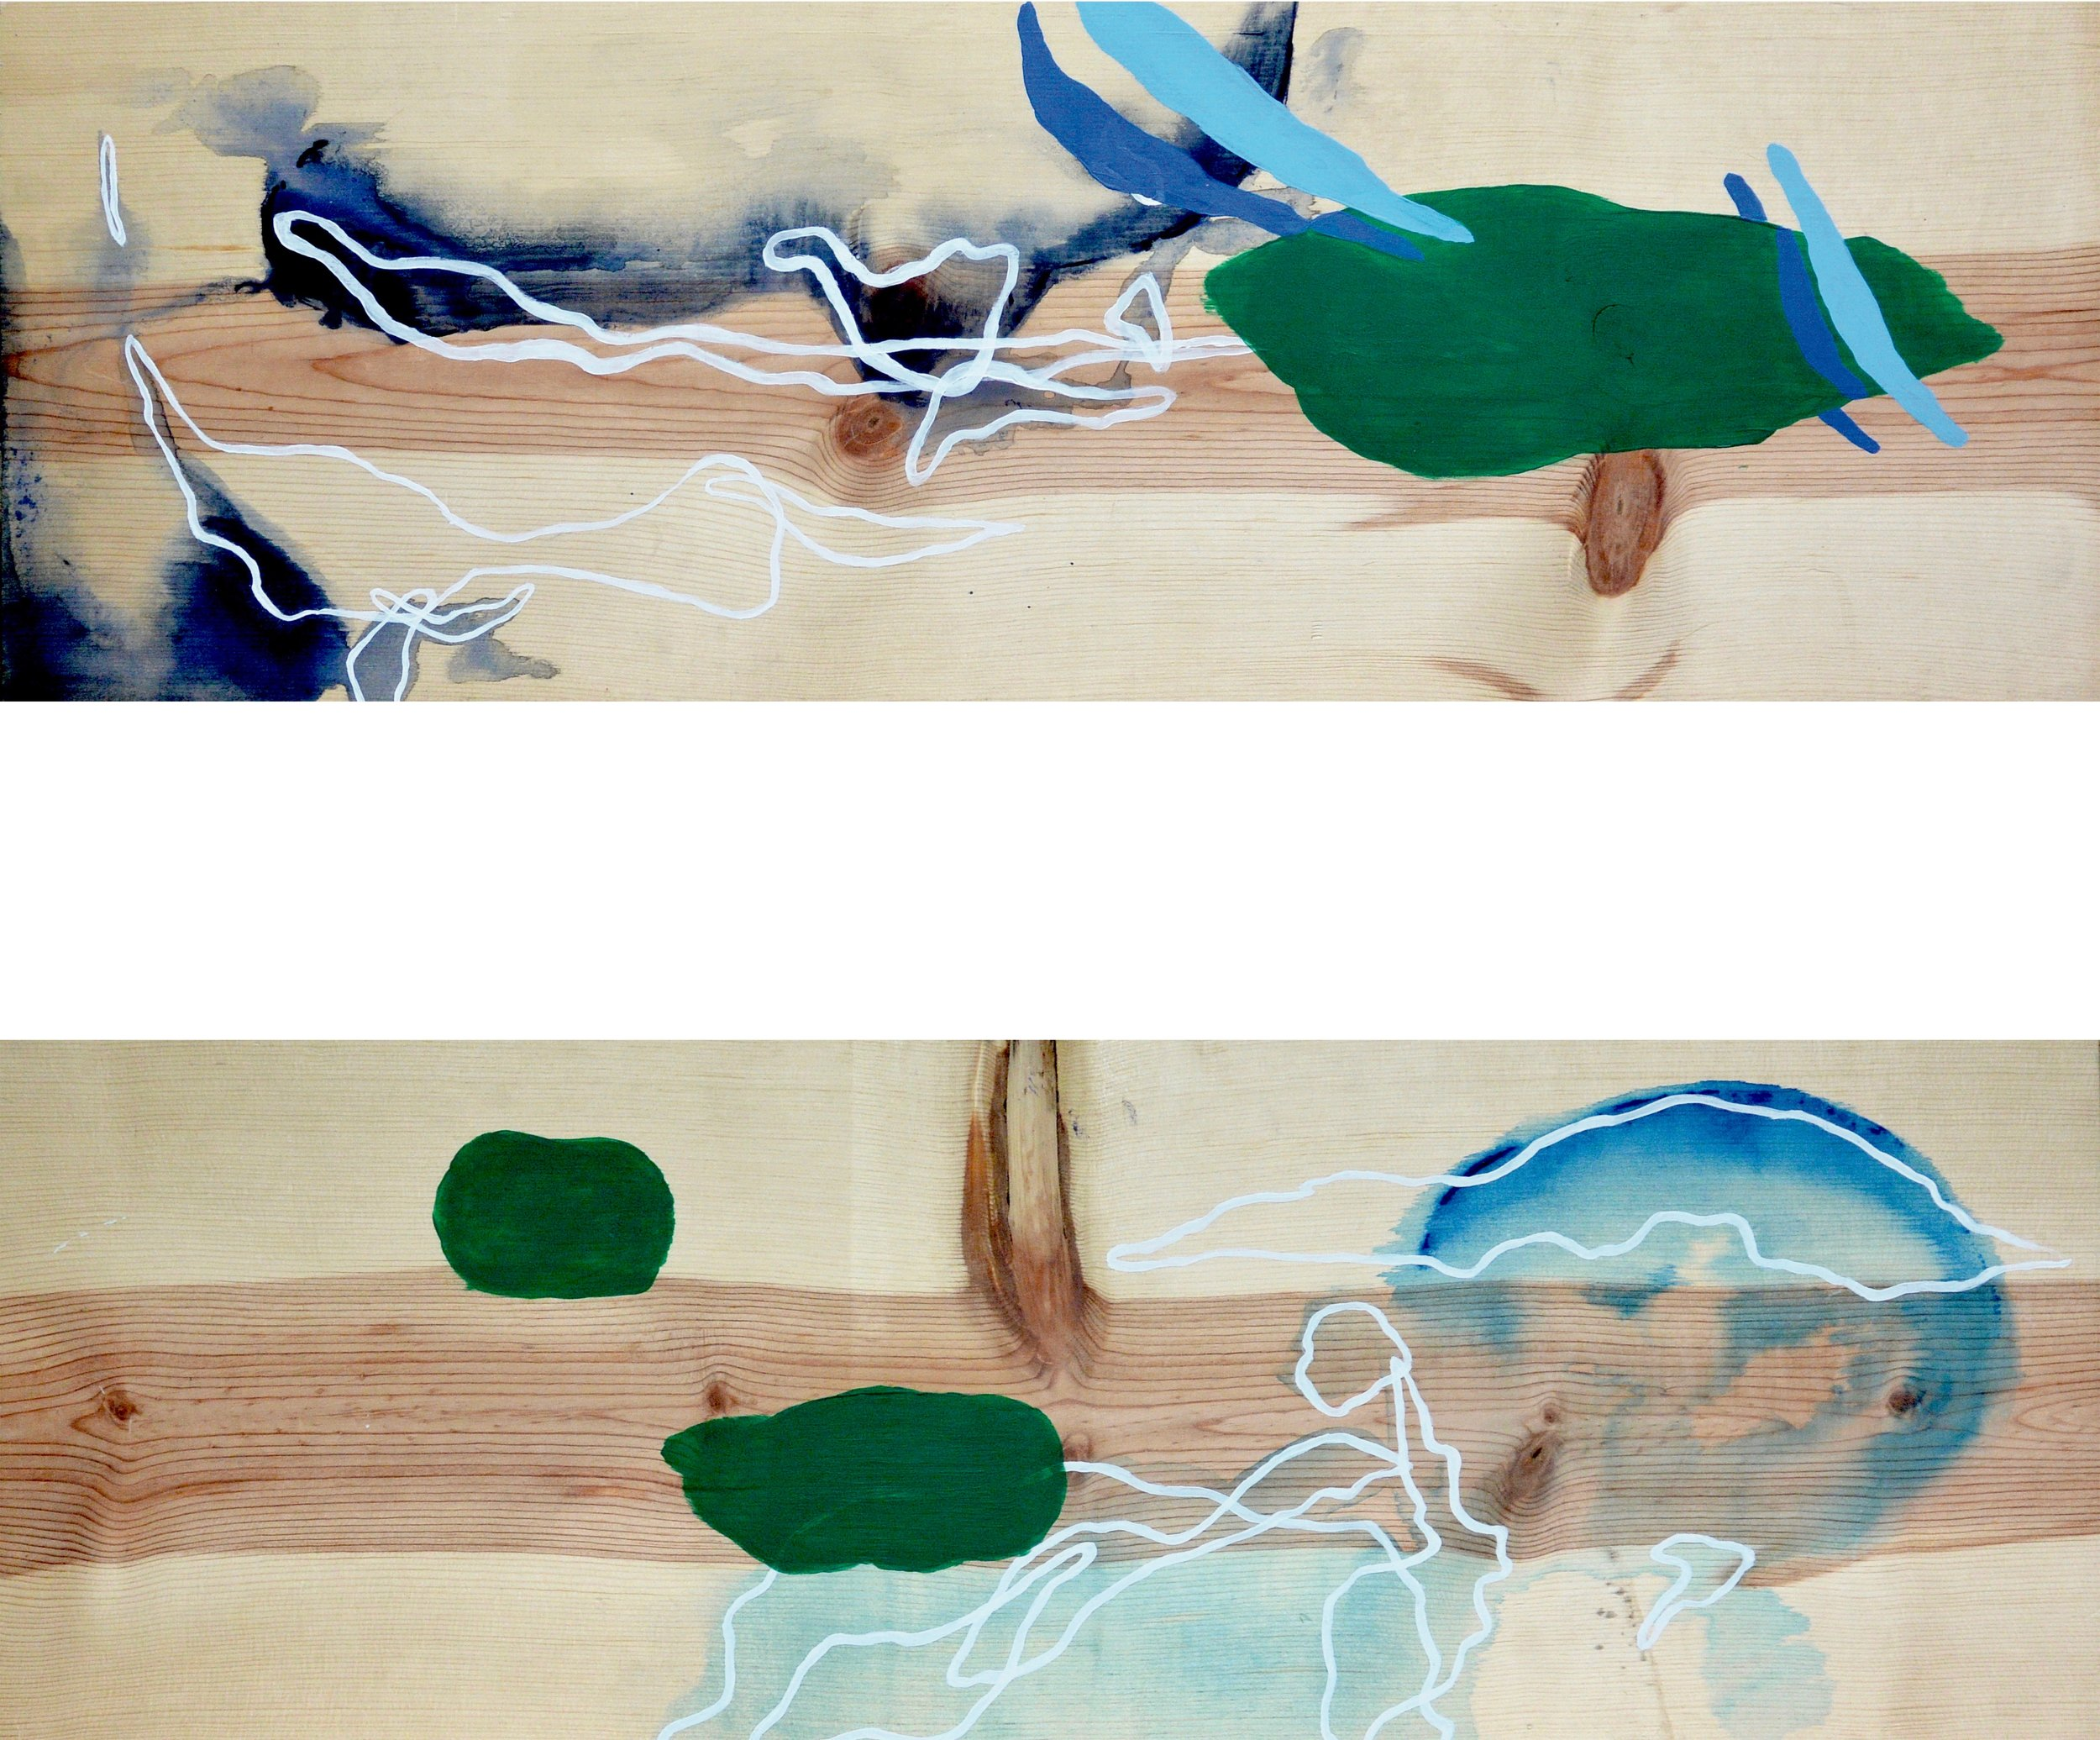 Cloud 1 , 2016. Acrylic on wood. 11 x 32 in.   Cloud 2 , 2016. Acrylic on wood. 11 x 32 in.